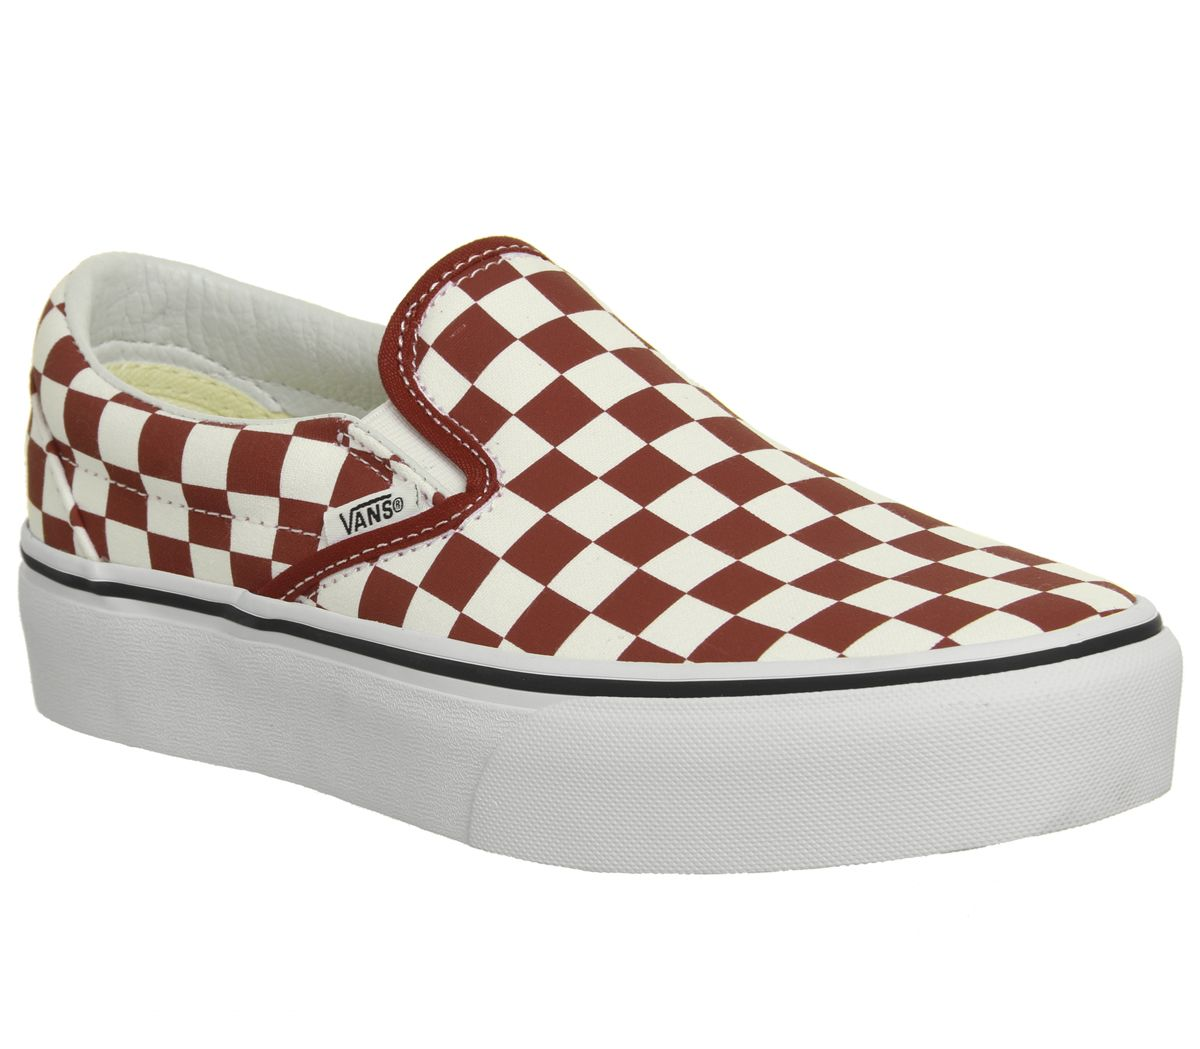 61e49d2414 Vans Classic Slip On Platform Trainers Red White Checkerboard - Hers ...